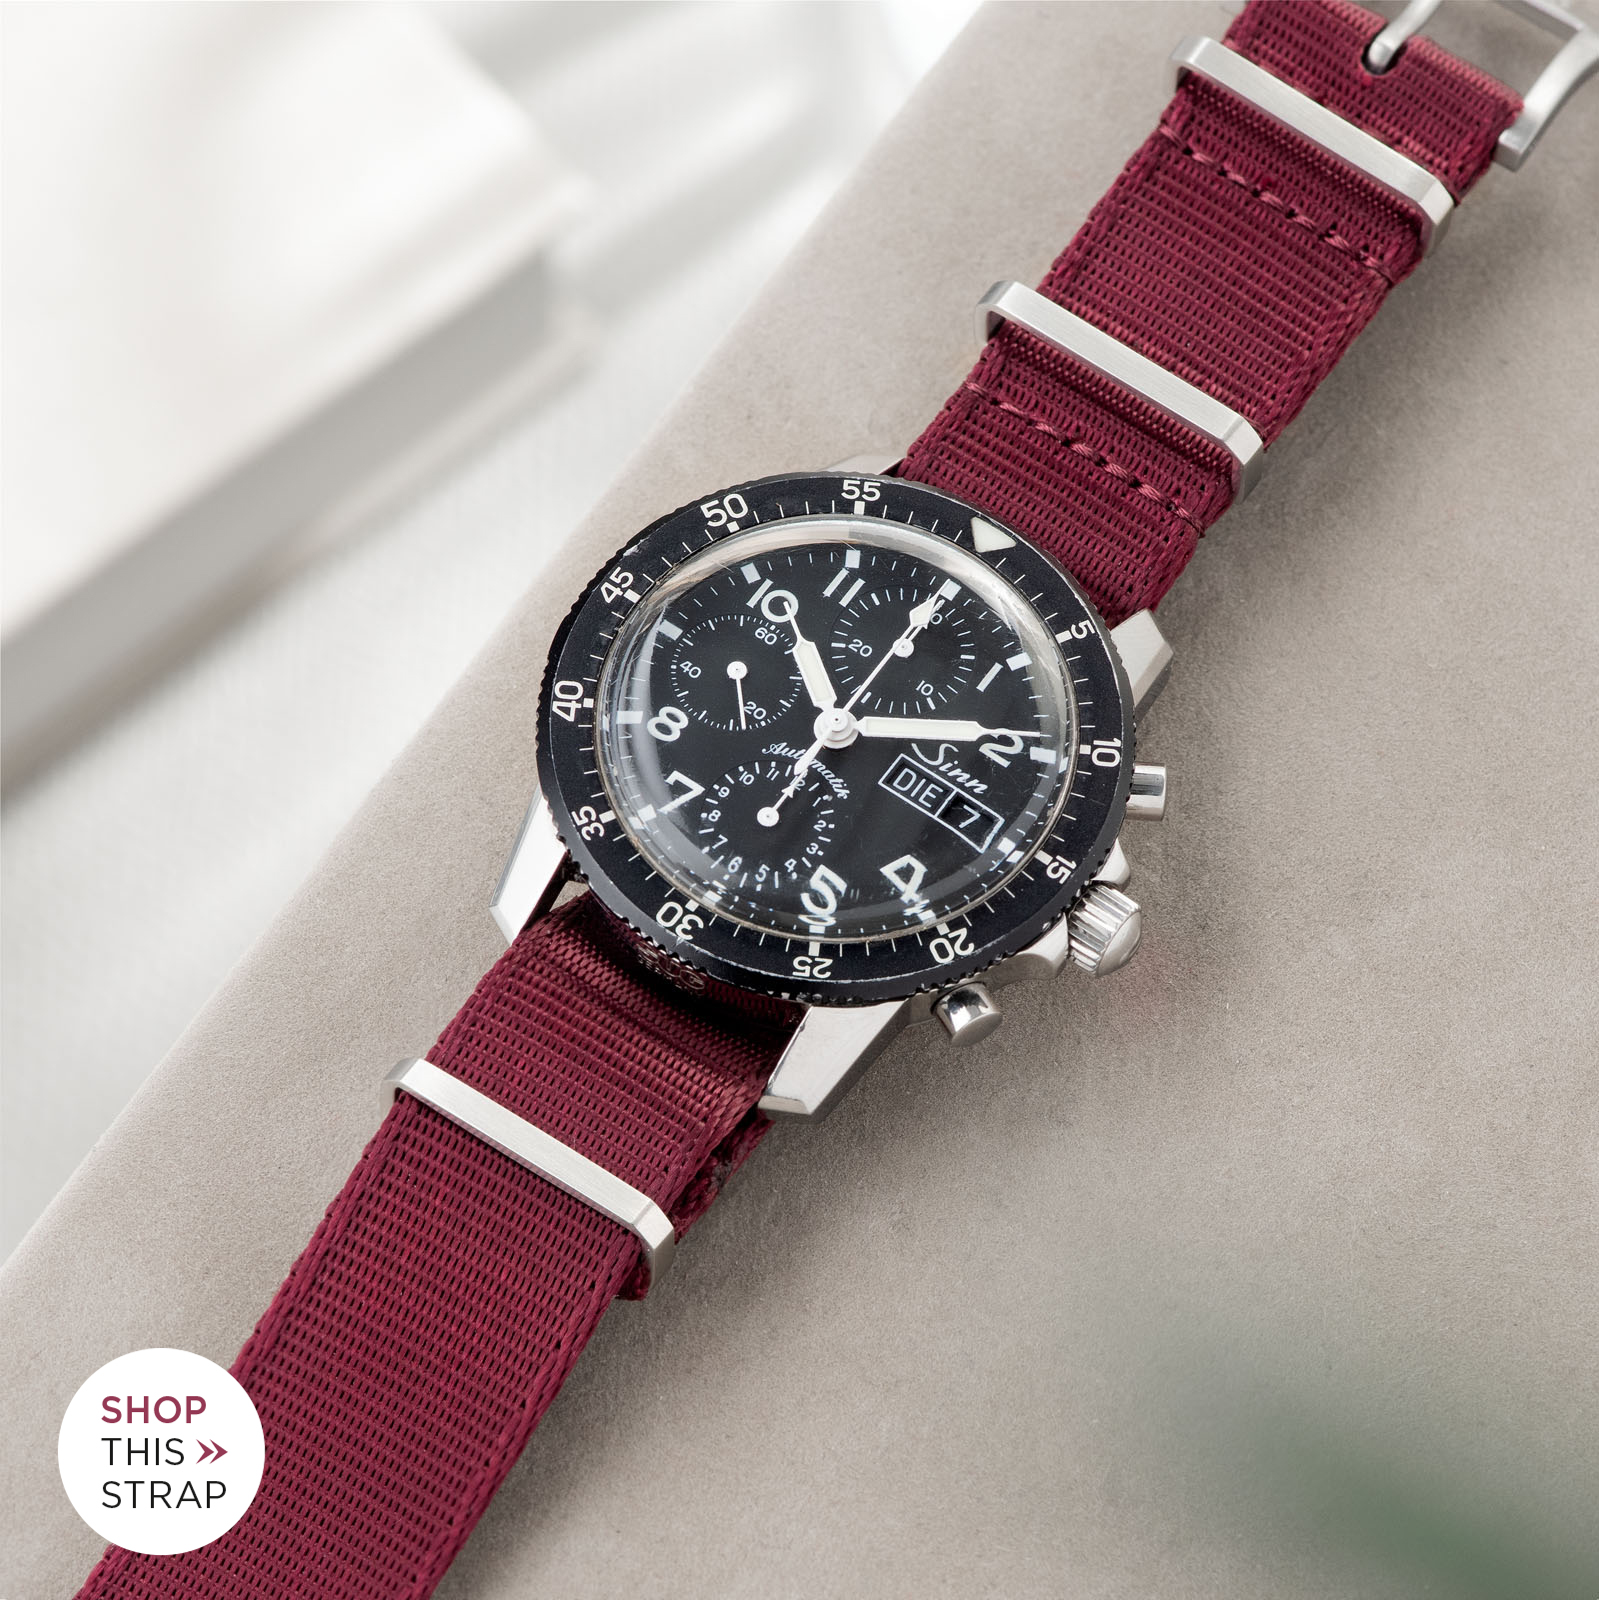 Bulang and Sons_Strap Guide_Sinn 103_Deluxe Nylon Nato Watch Strap Burgundy Red